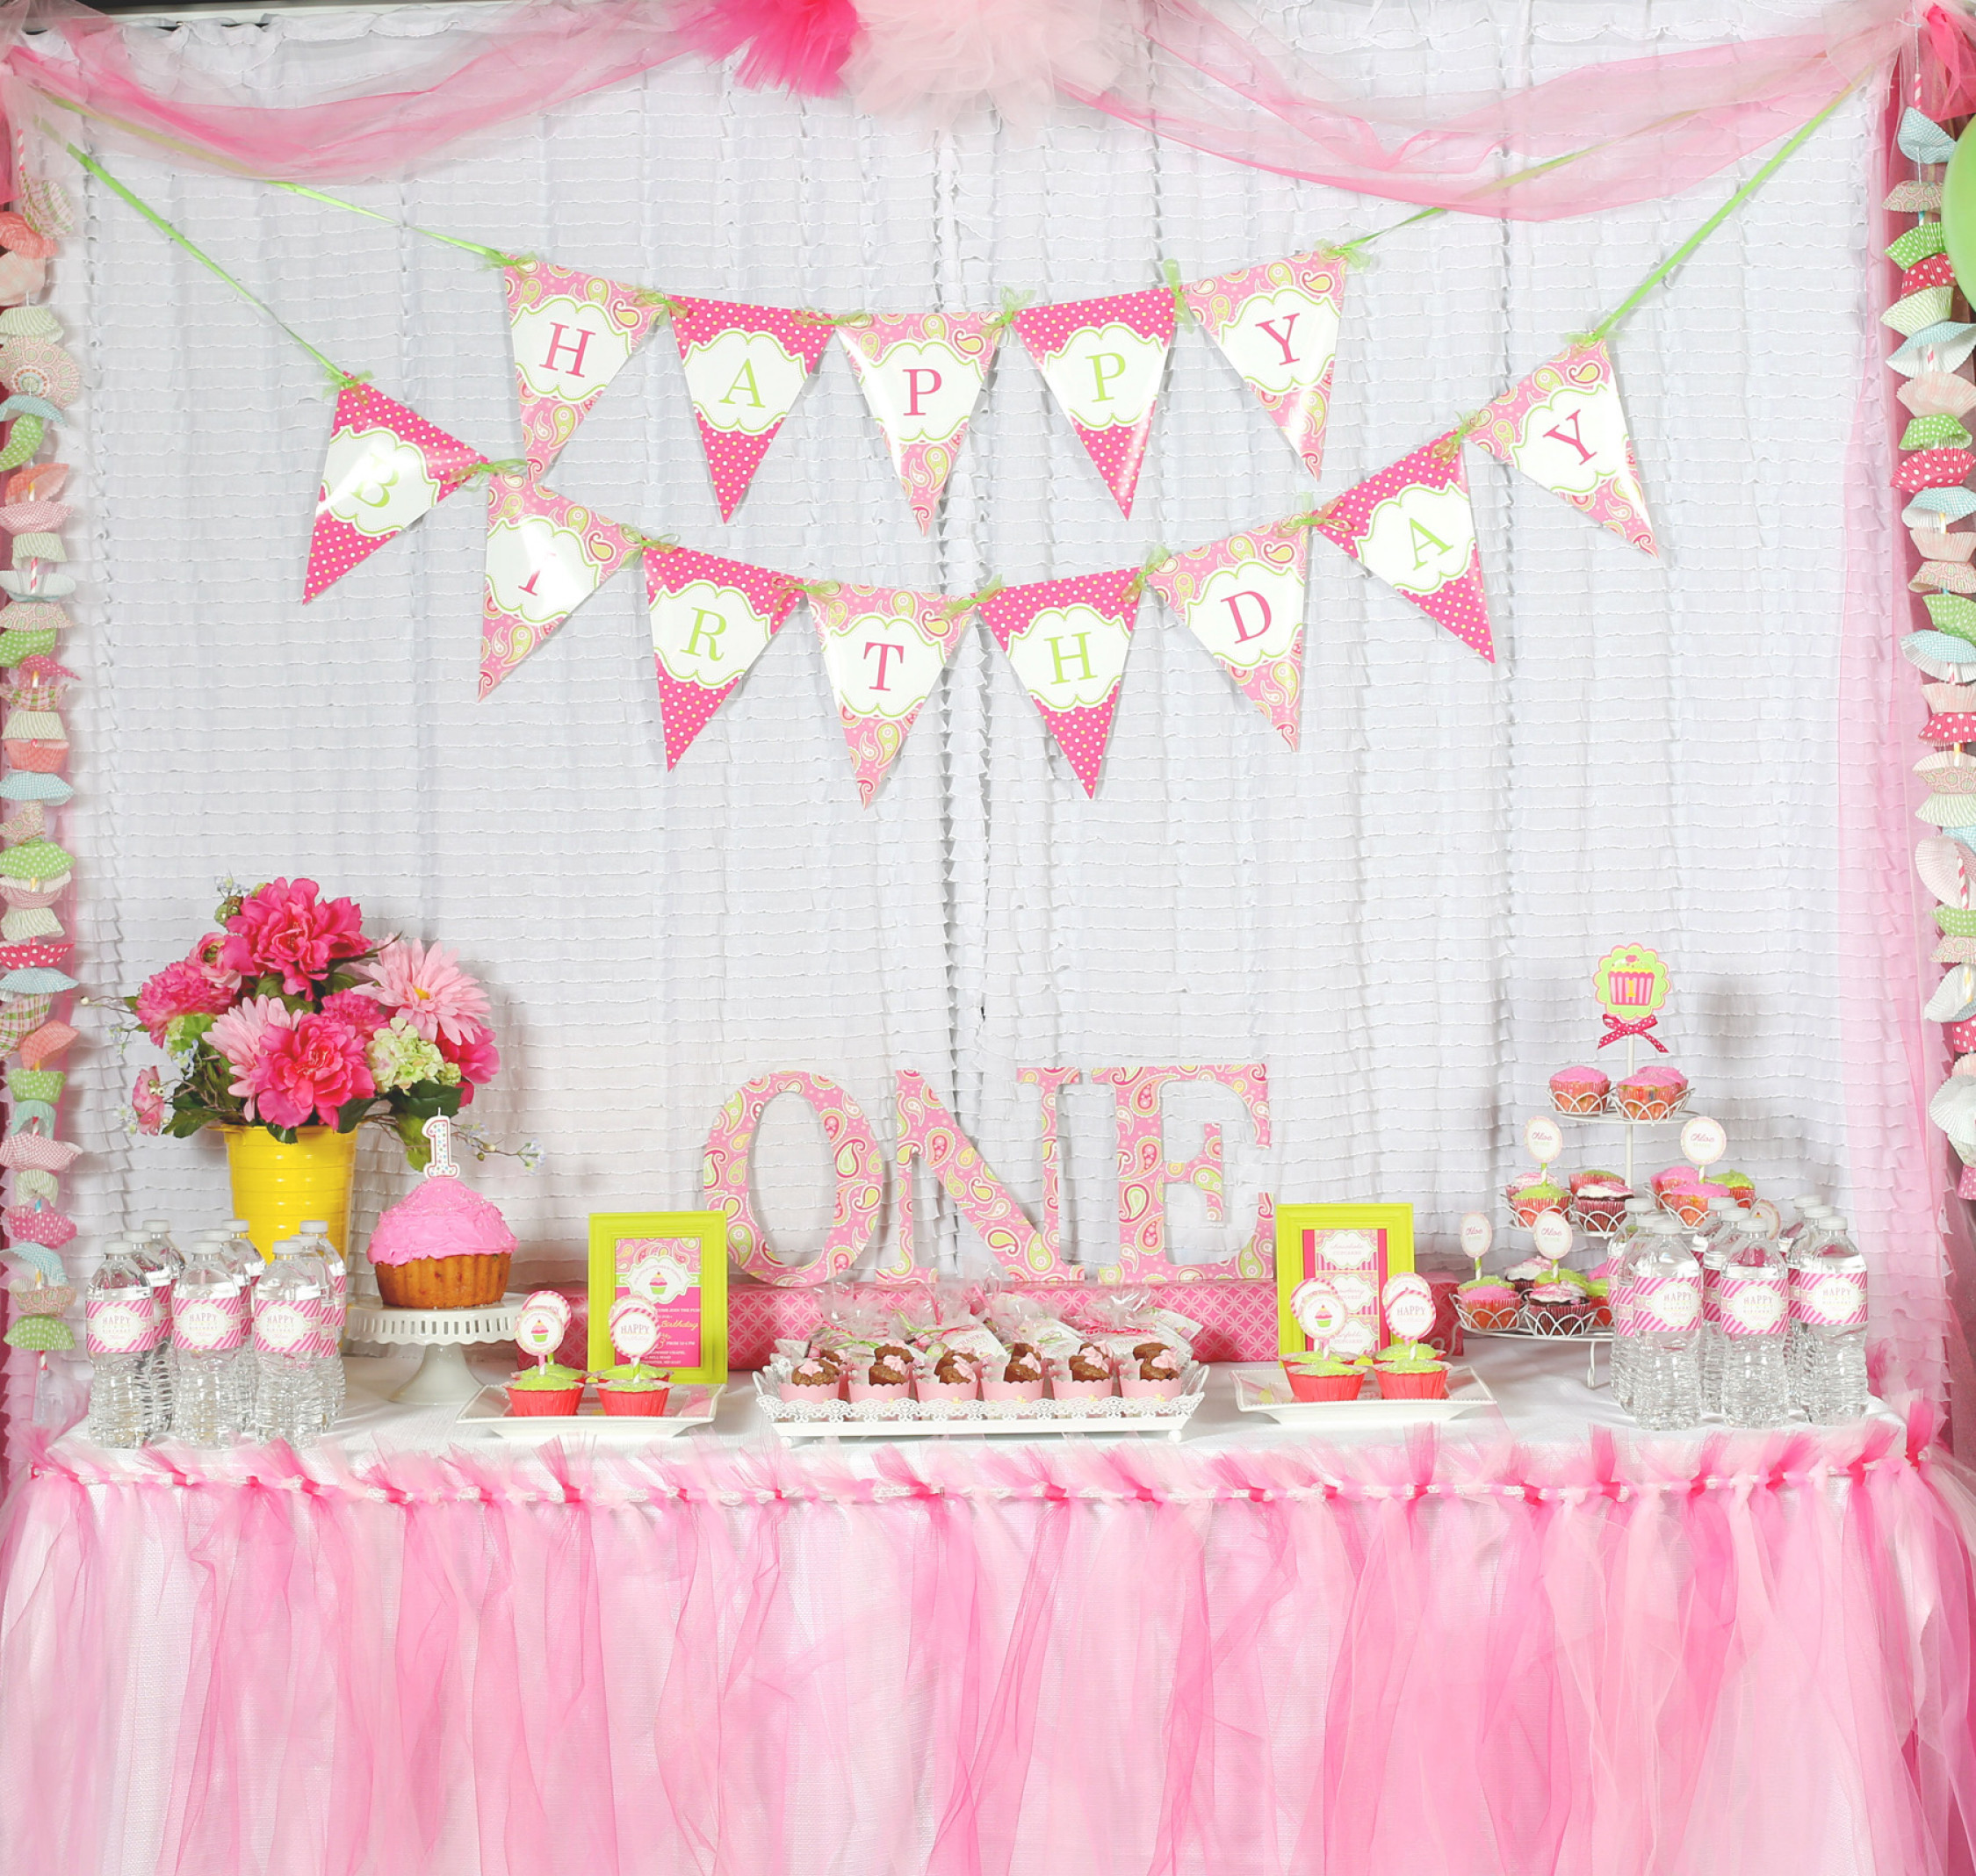 Best ideas about First Birthday Party Decor . Save or Pin A Cupcake Themed 1st Birthday party with Paisley and Polka Now.